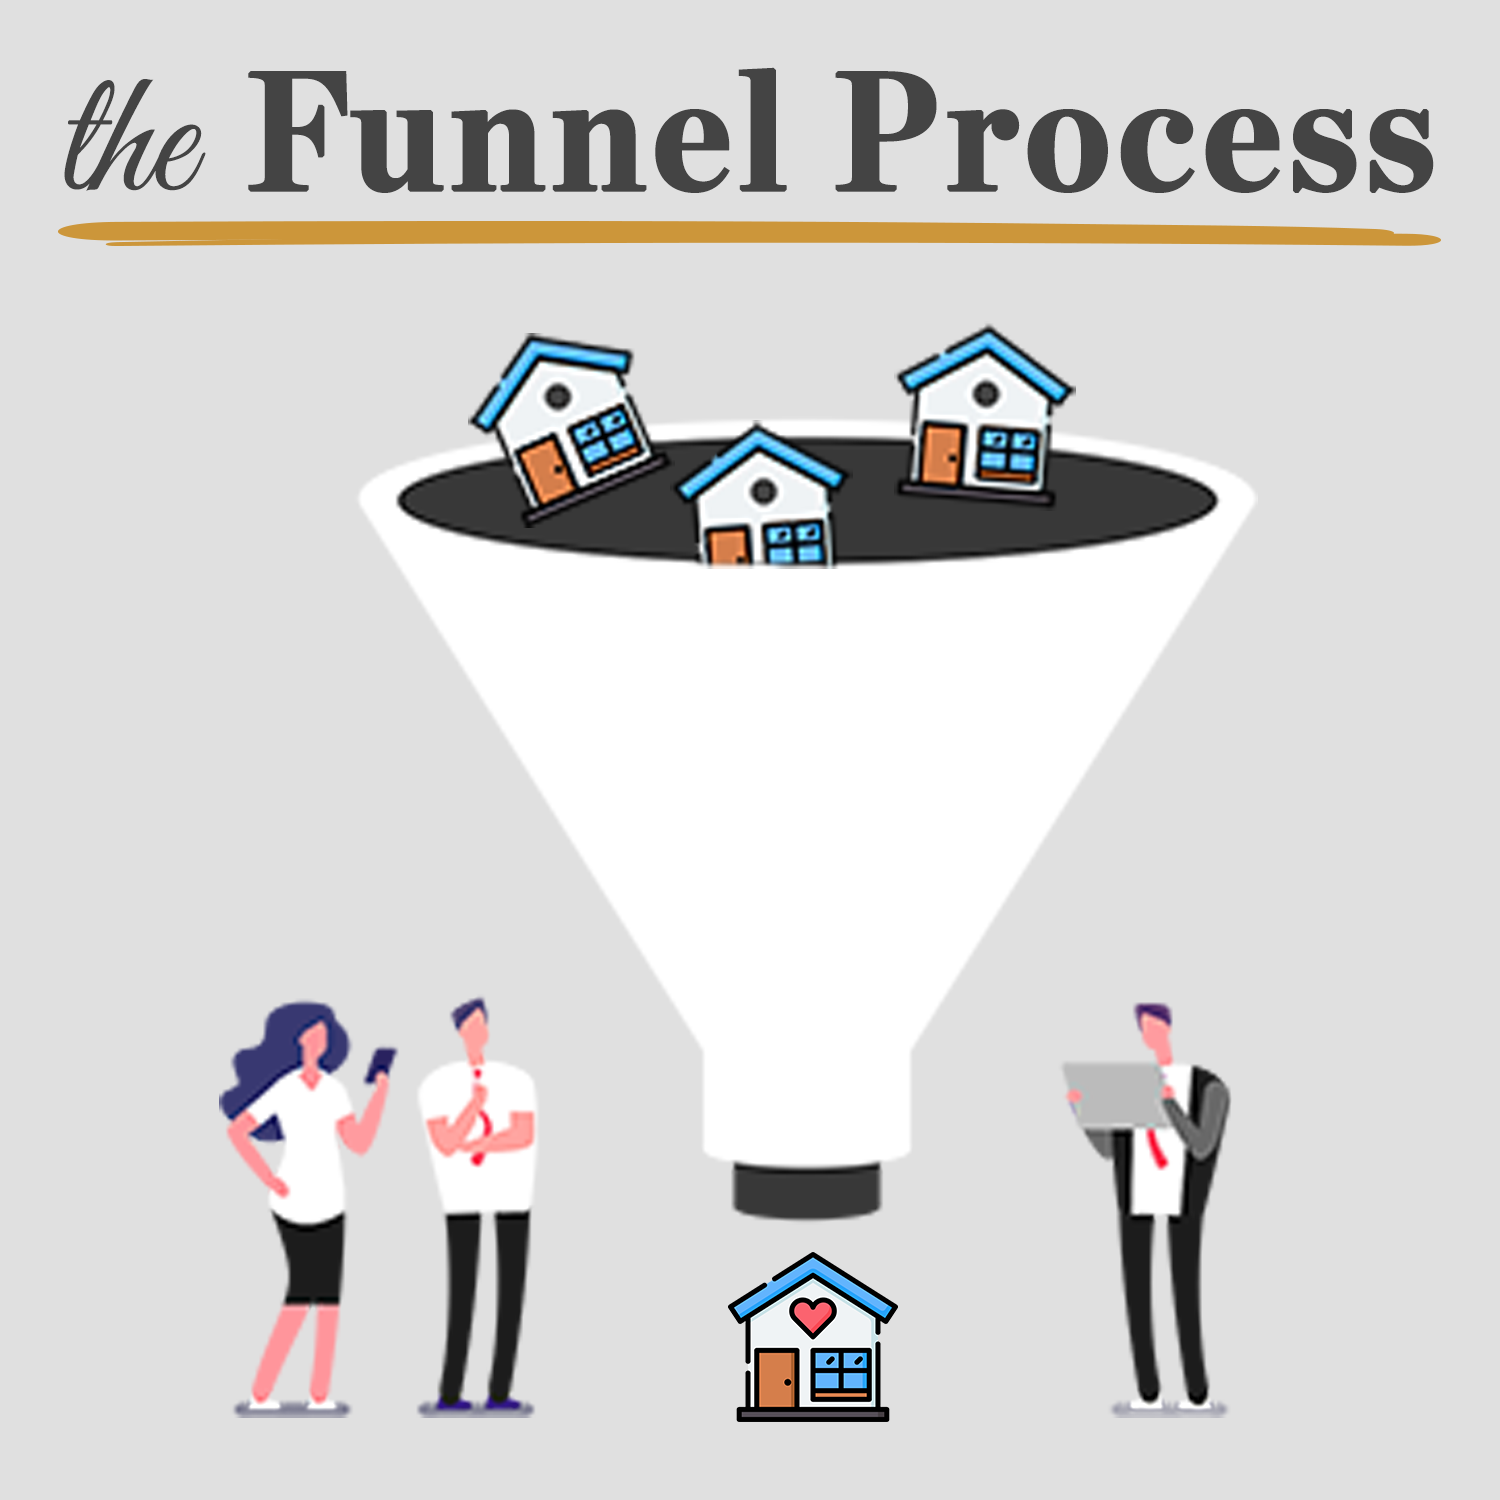 The Funnel Process